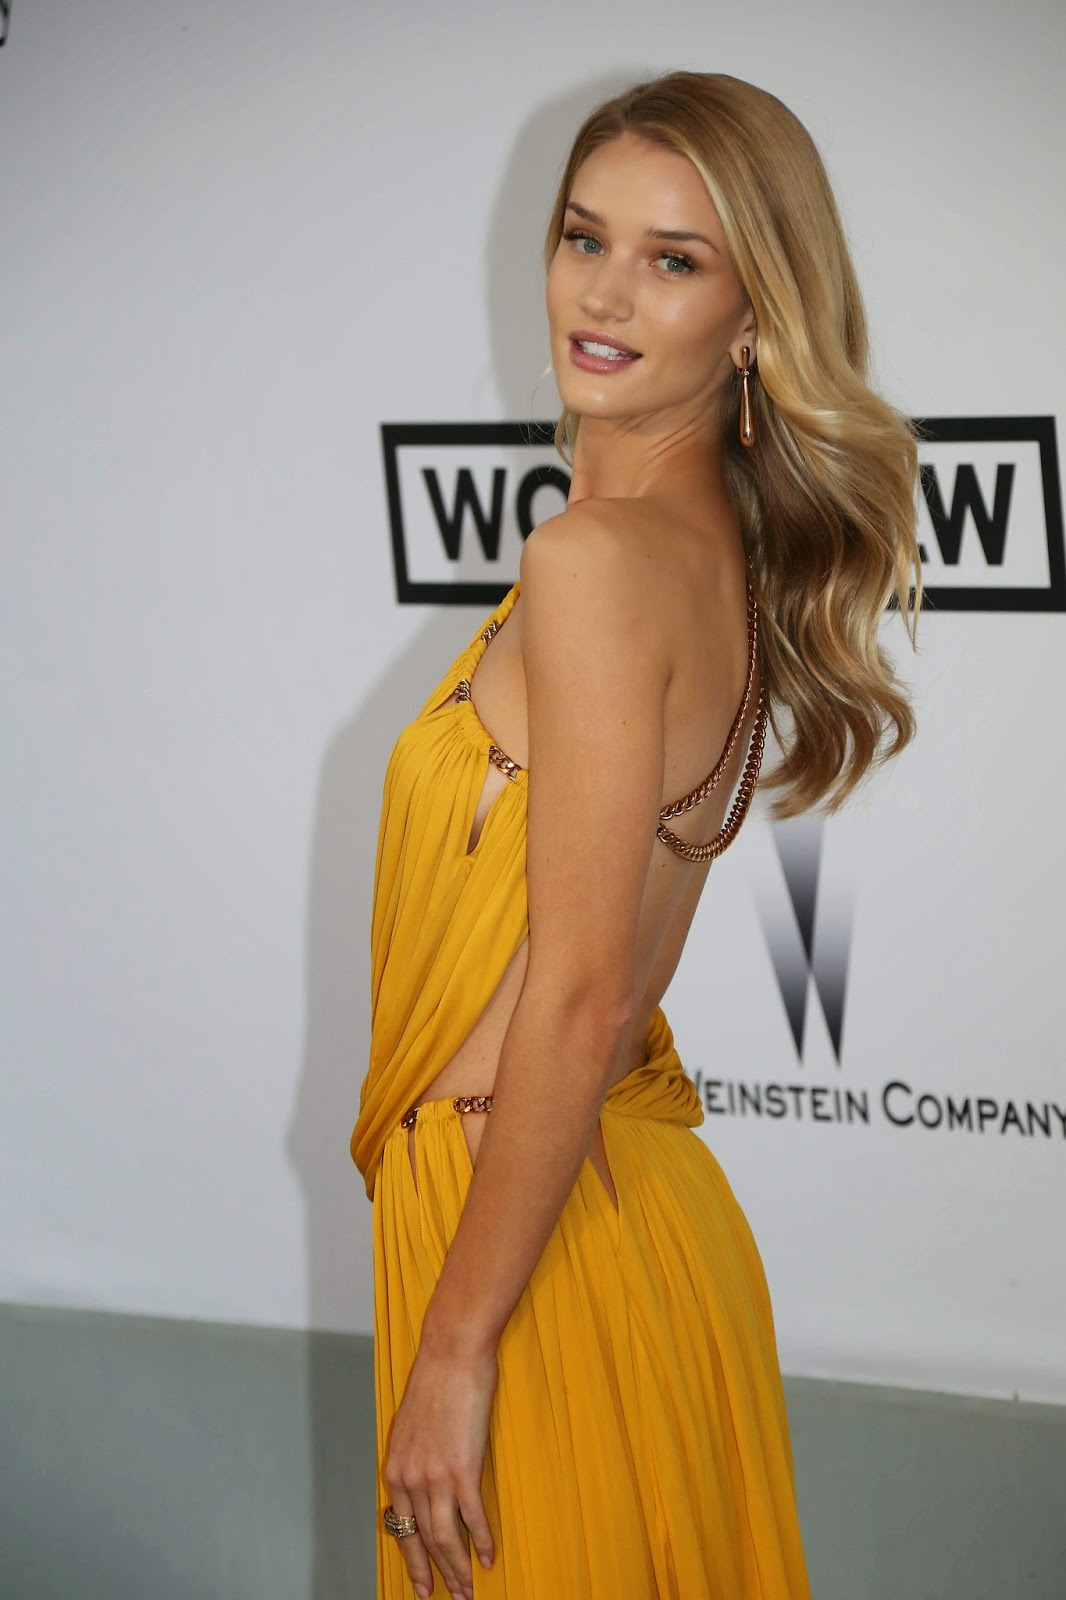 Sharon Stone, Cara Delevingne, Rosie Huntington and Izabel Goulart shine in Cannes‏